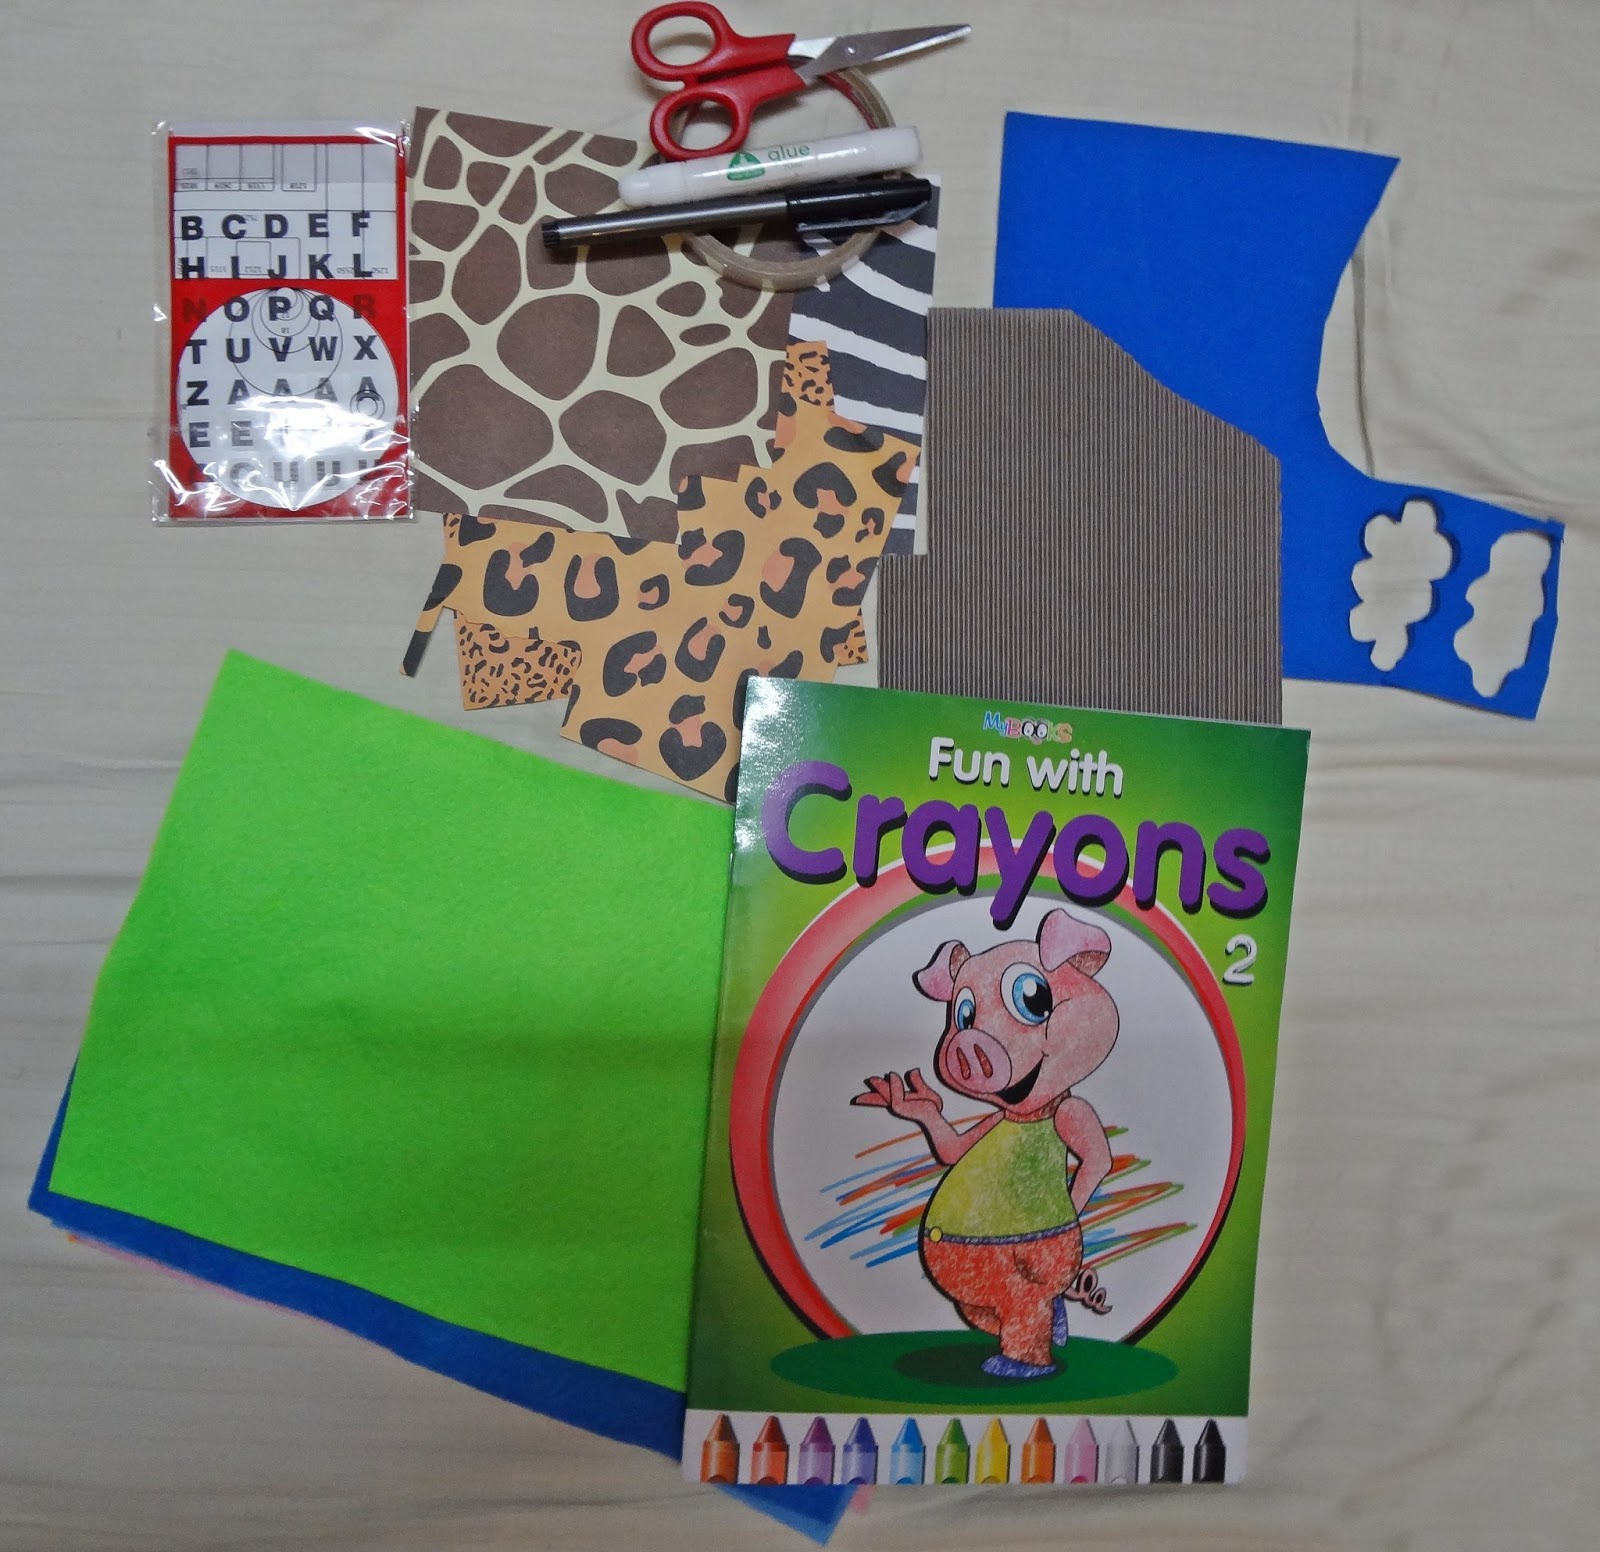 Jungle scrapbook ideas -  The Gift We Decided For Him Was A Bag With Mowgli And Balloo From Jungle Book Along With This We Made A Personalised Scrapbook